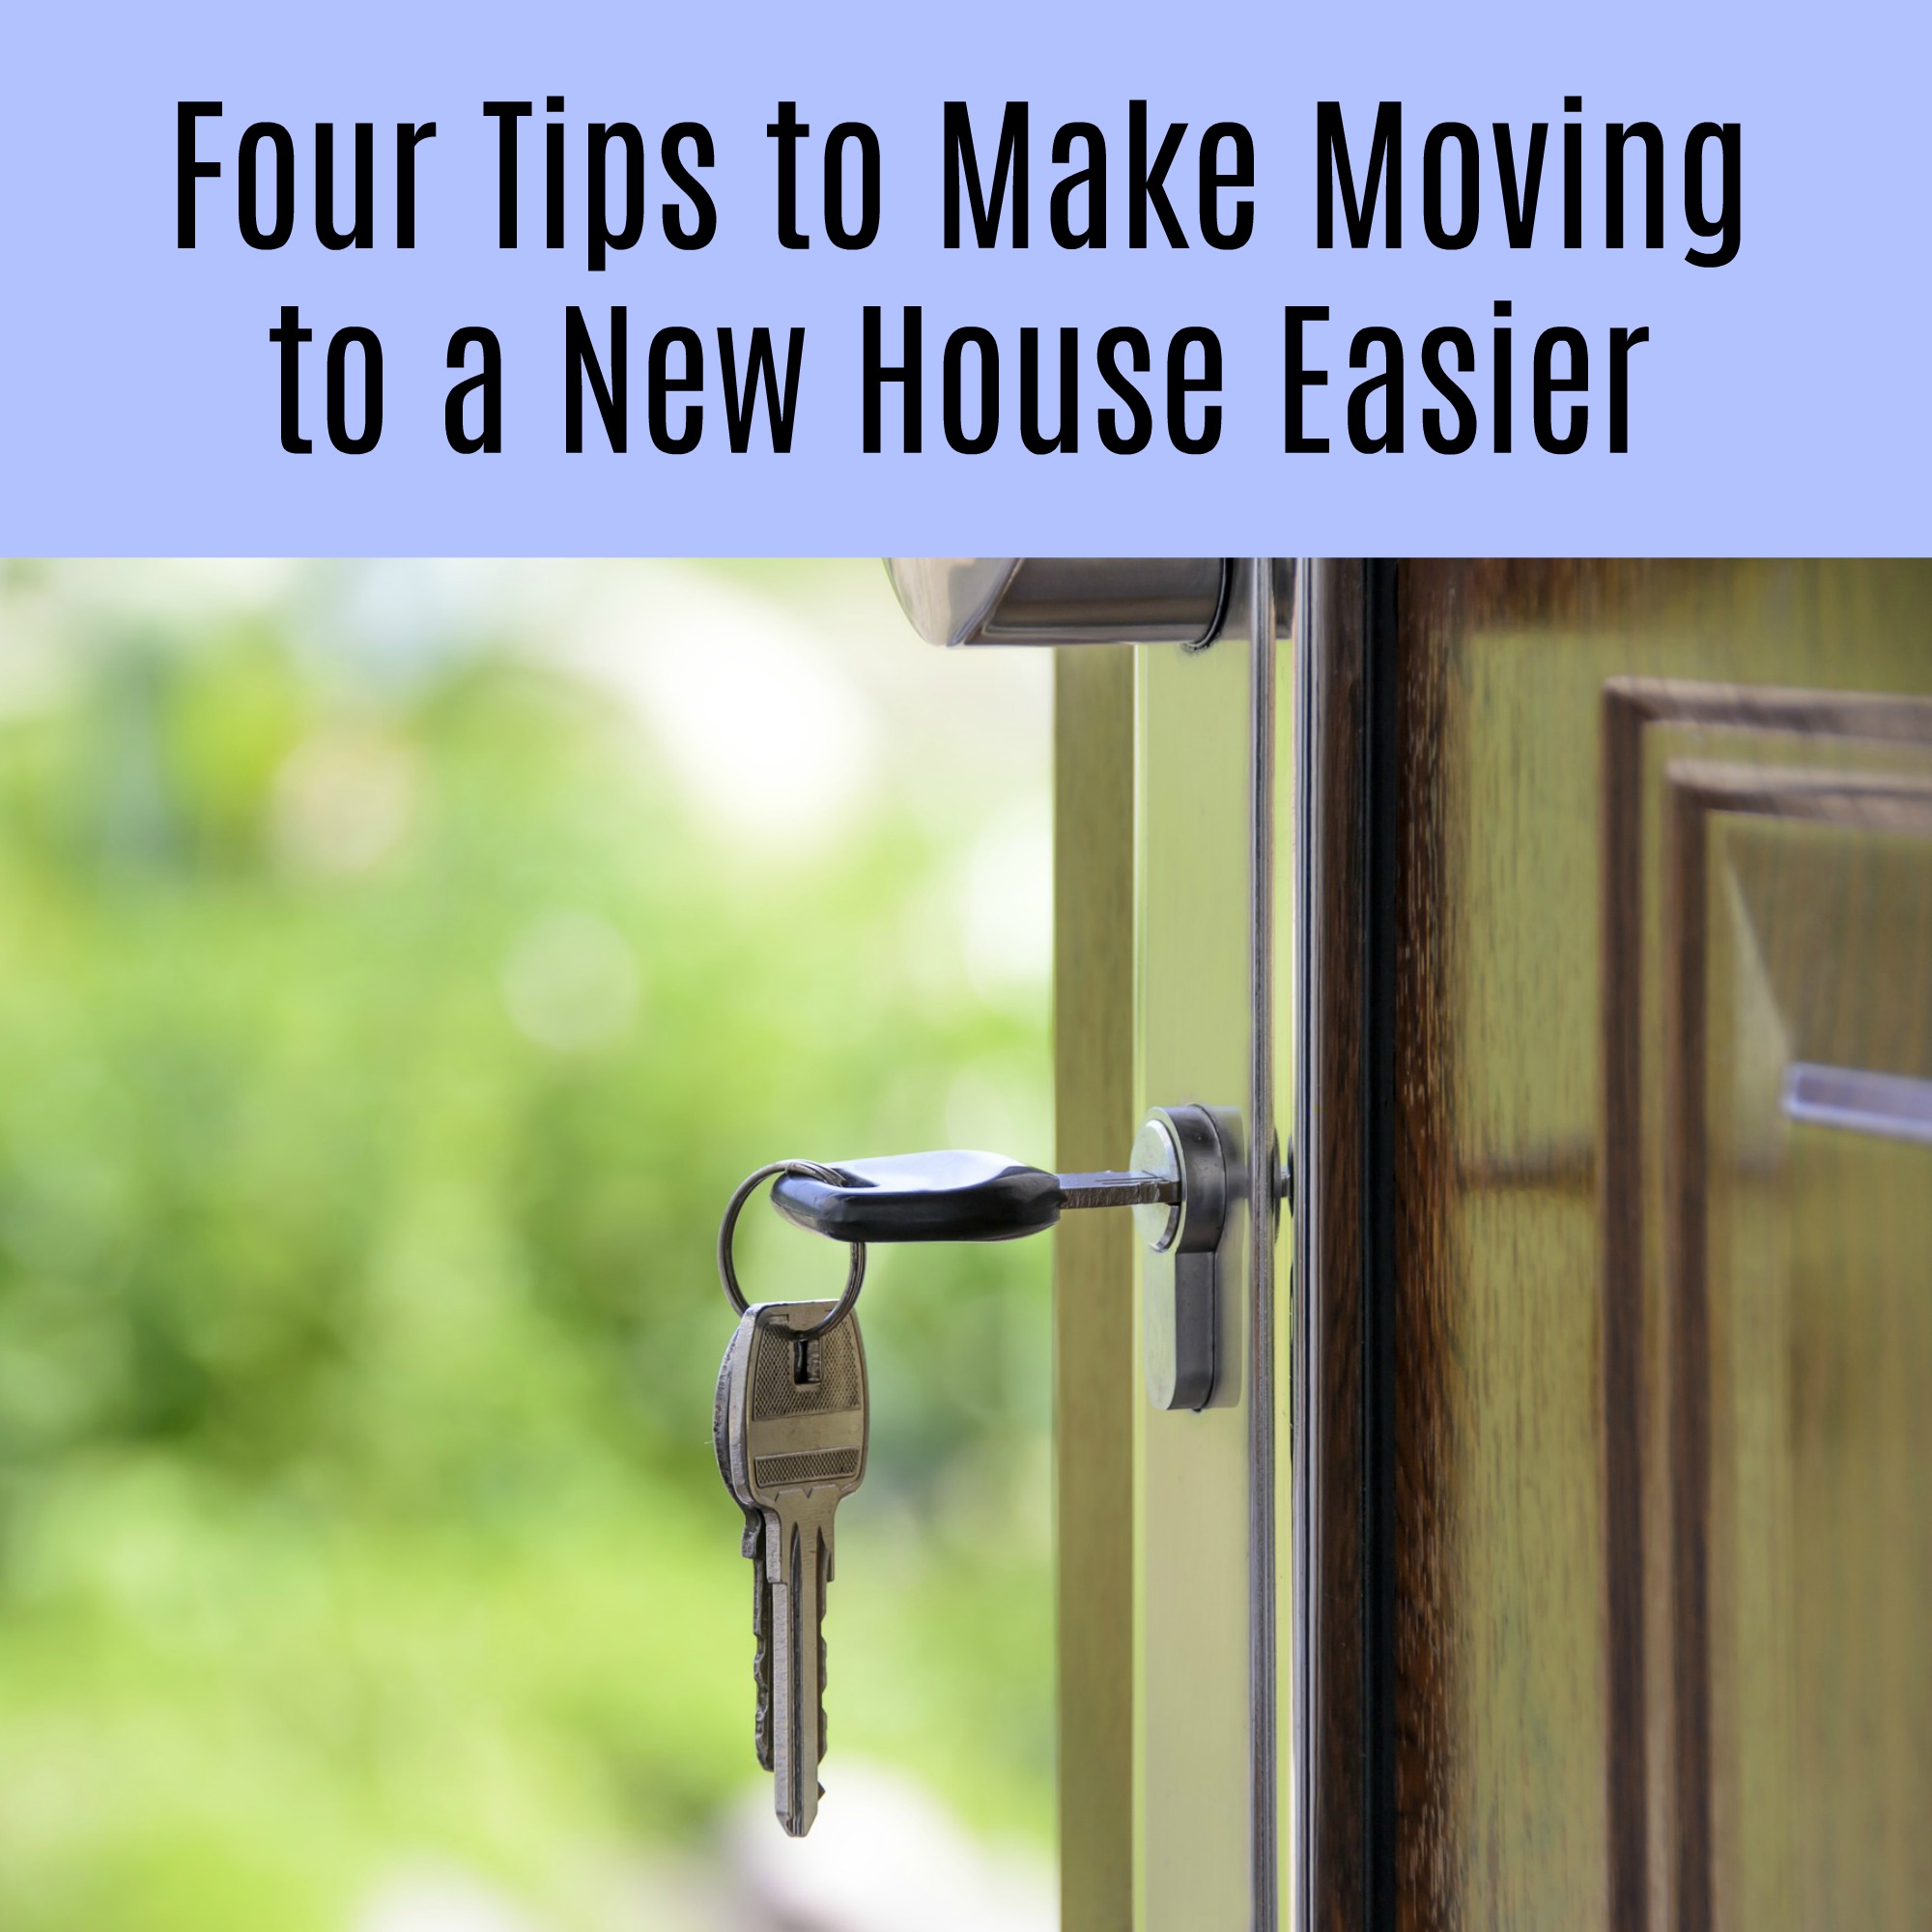 Four Tips to Use to Make Moving to a New House Easier